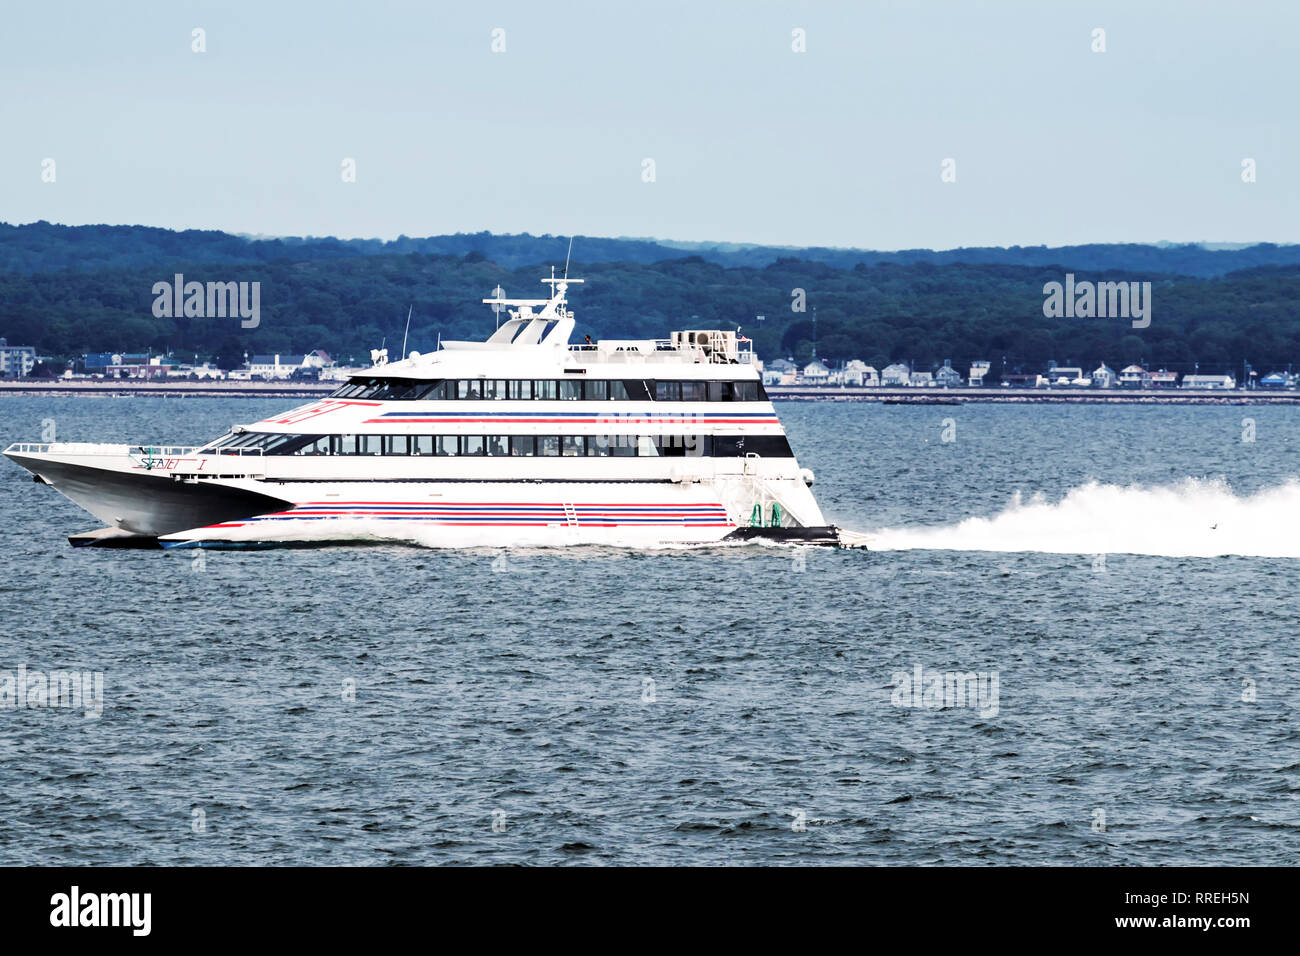 New London, Connecticut, USA – 27 July 2017: The SEA JET is a high-speed passenger-only service, crossing between New London, CT and Orient Point, NY  - Stock Image